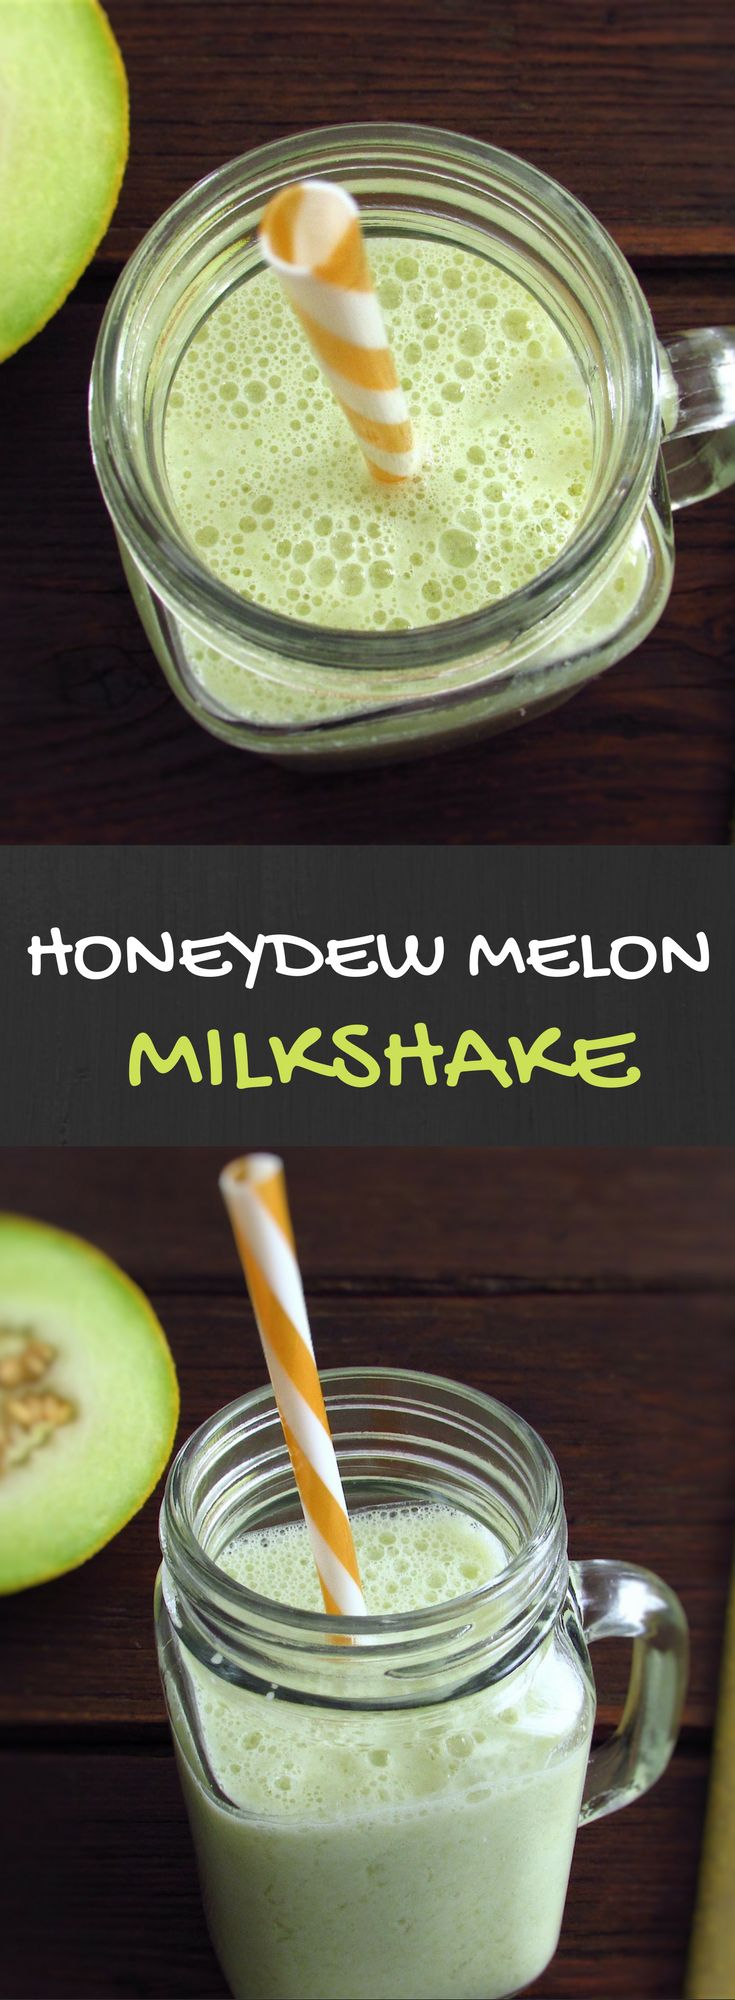 Honeydew melon milkshake   Food From Portugal. Want to prepare a refreshing drink for summer? We have a great suggestion for you! A very refreshing honeydew melon milkshake, tasty and easy to prepare. #recipe #milkshake